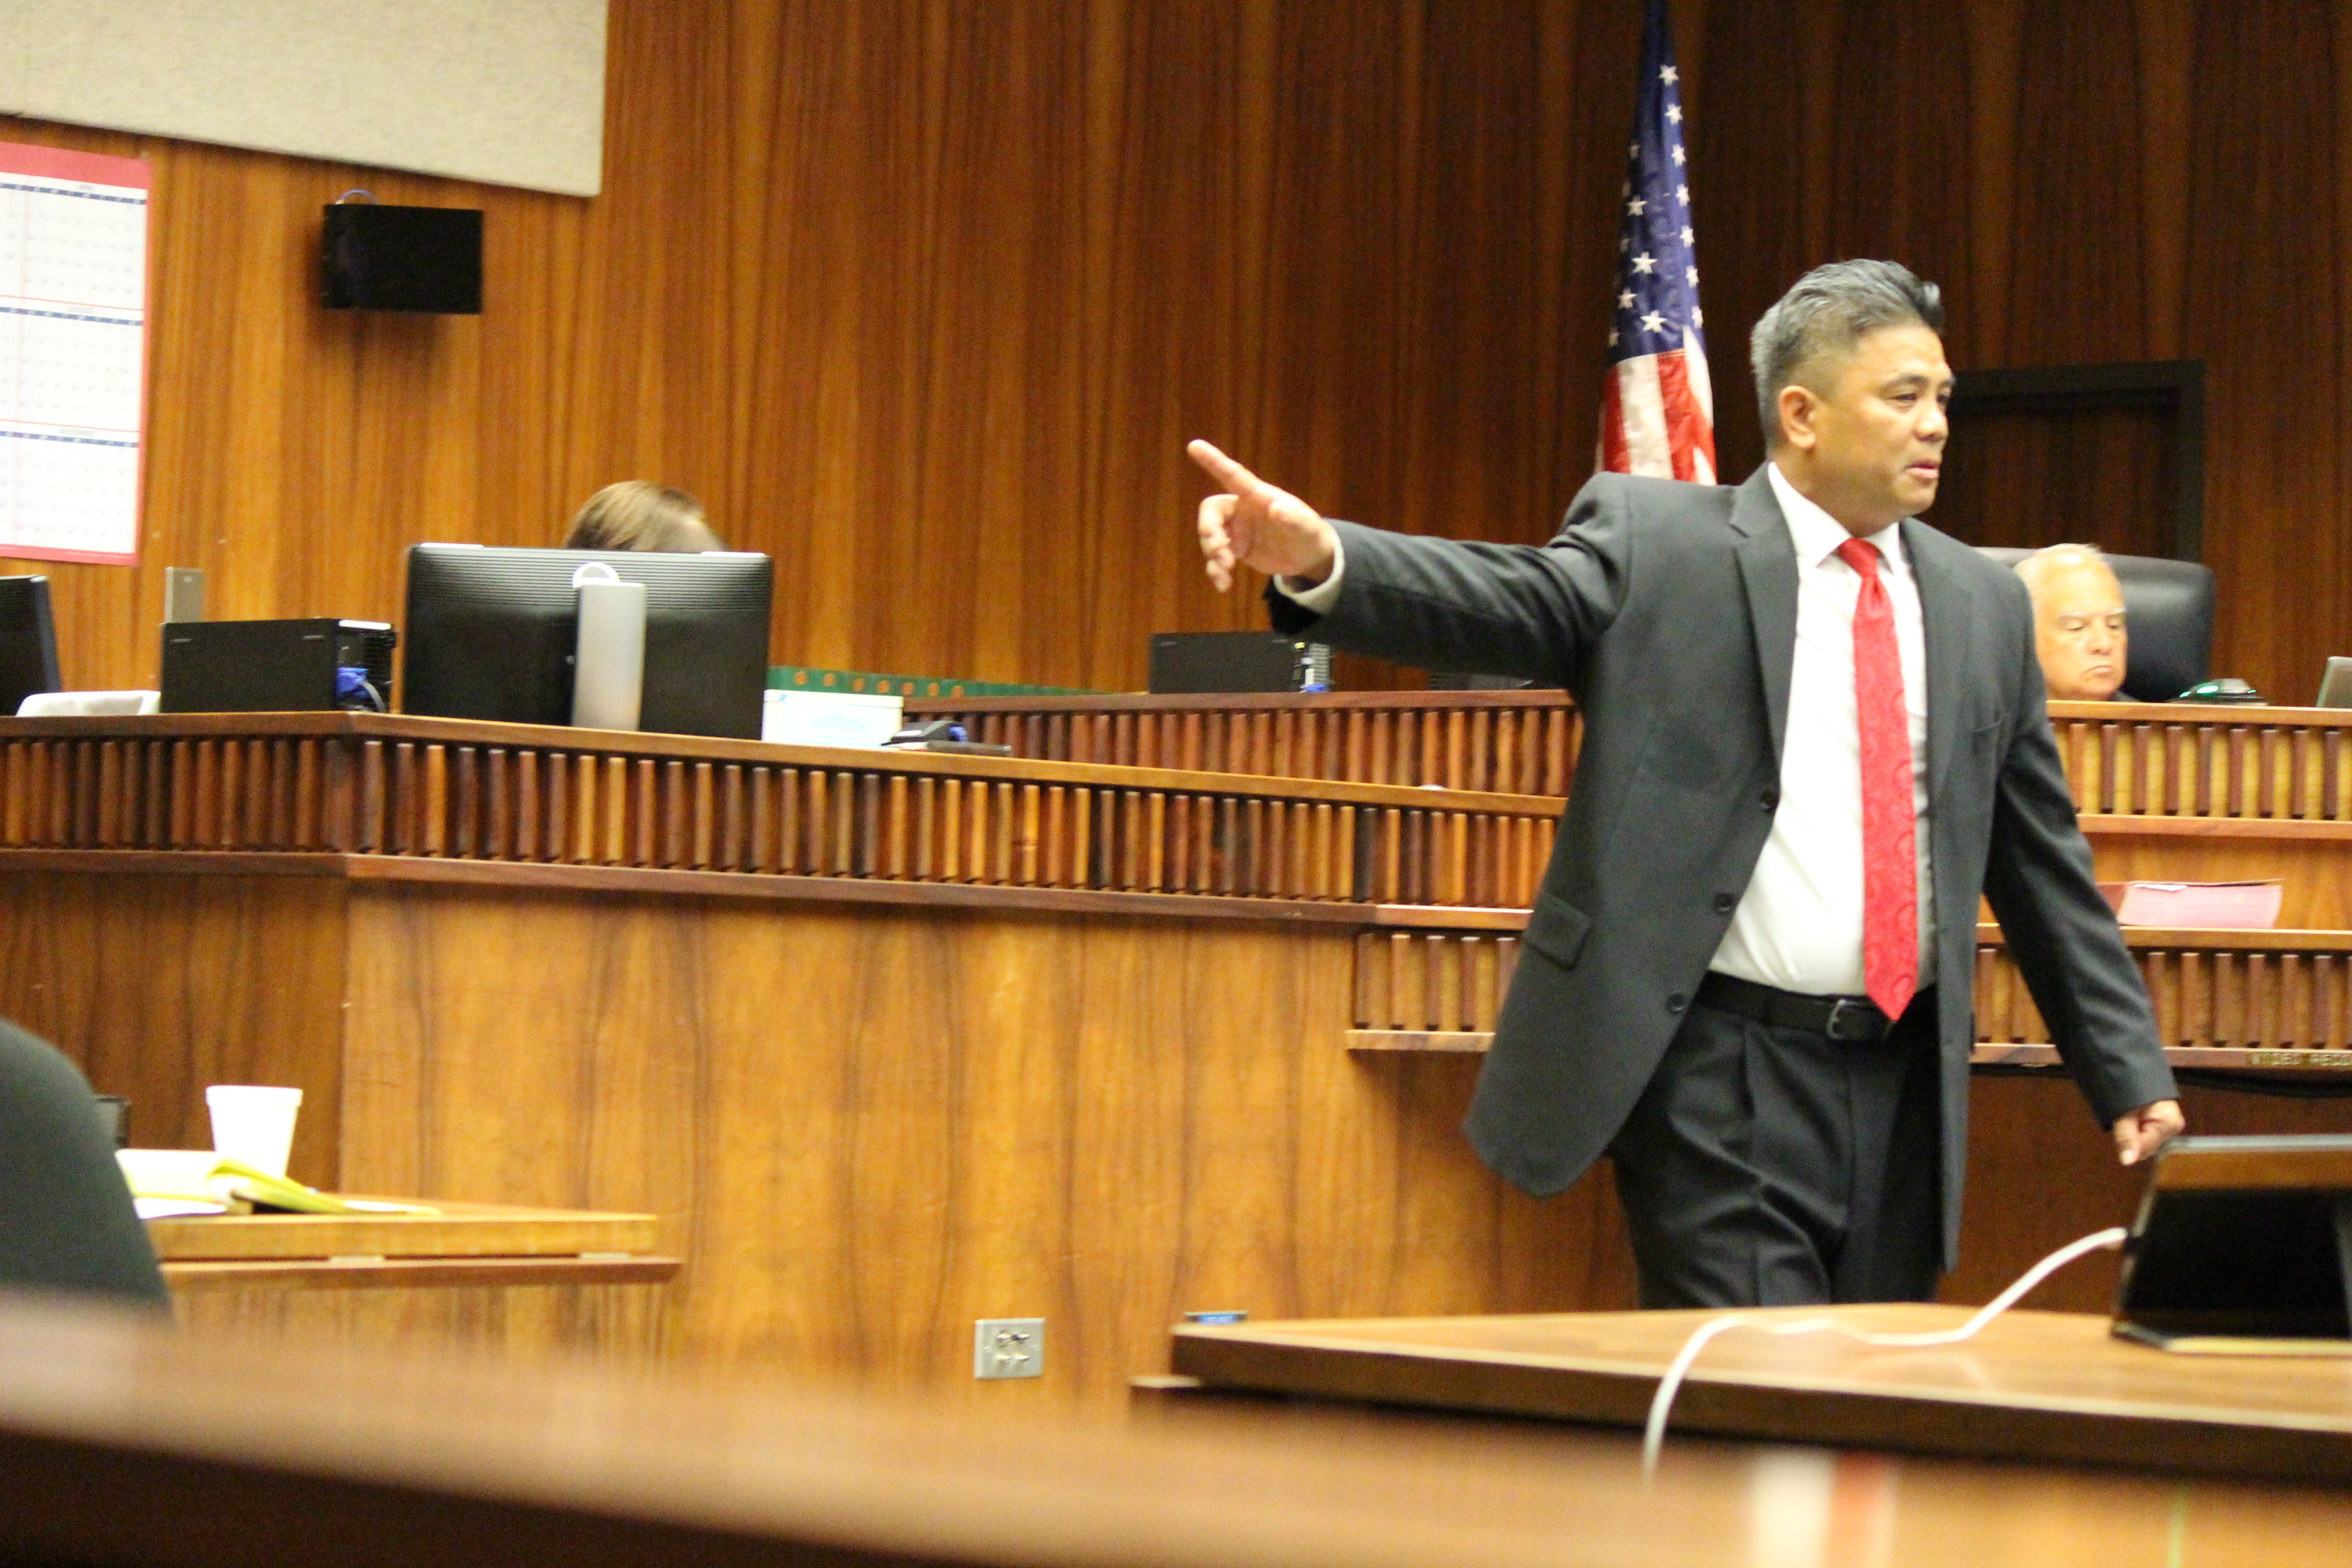 Prosecuting Attorney Robert Rivera. Photo 11.29.16 by Wendy Osher.